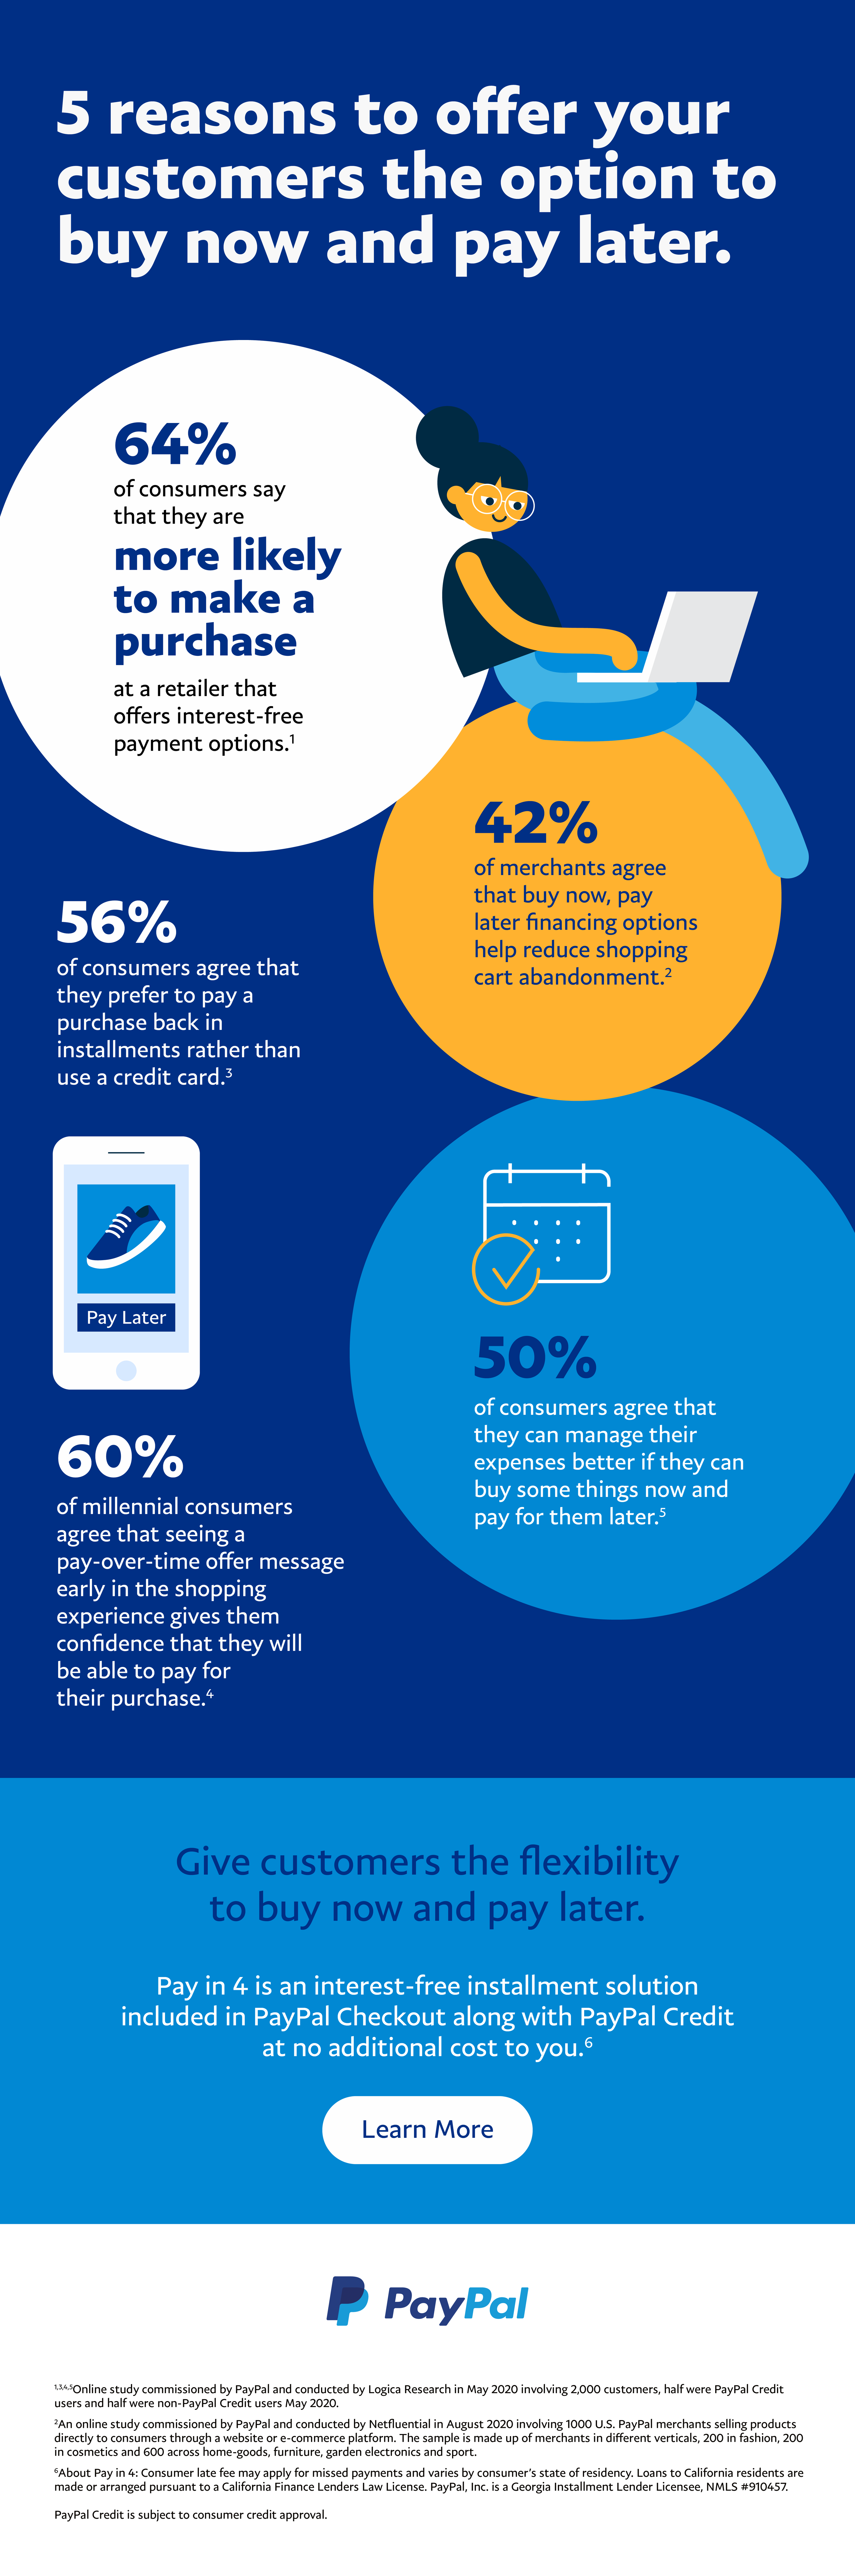 5 reasons to offer your customers an option to buy now and pay later infographic